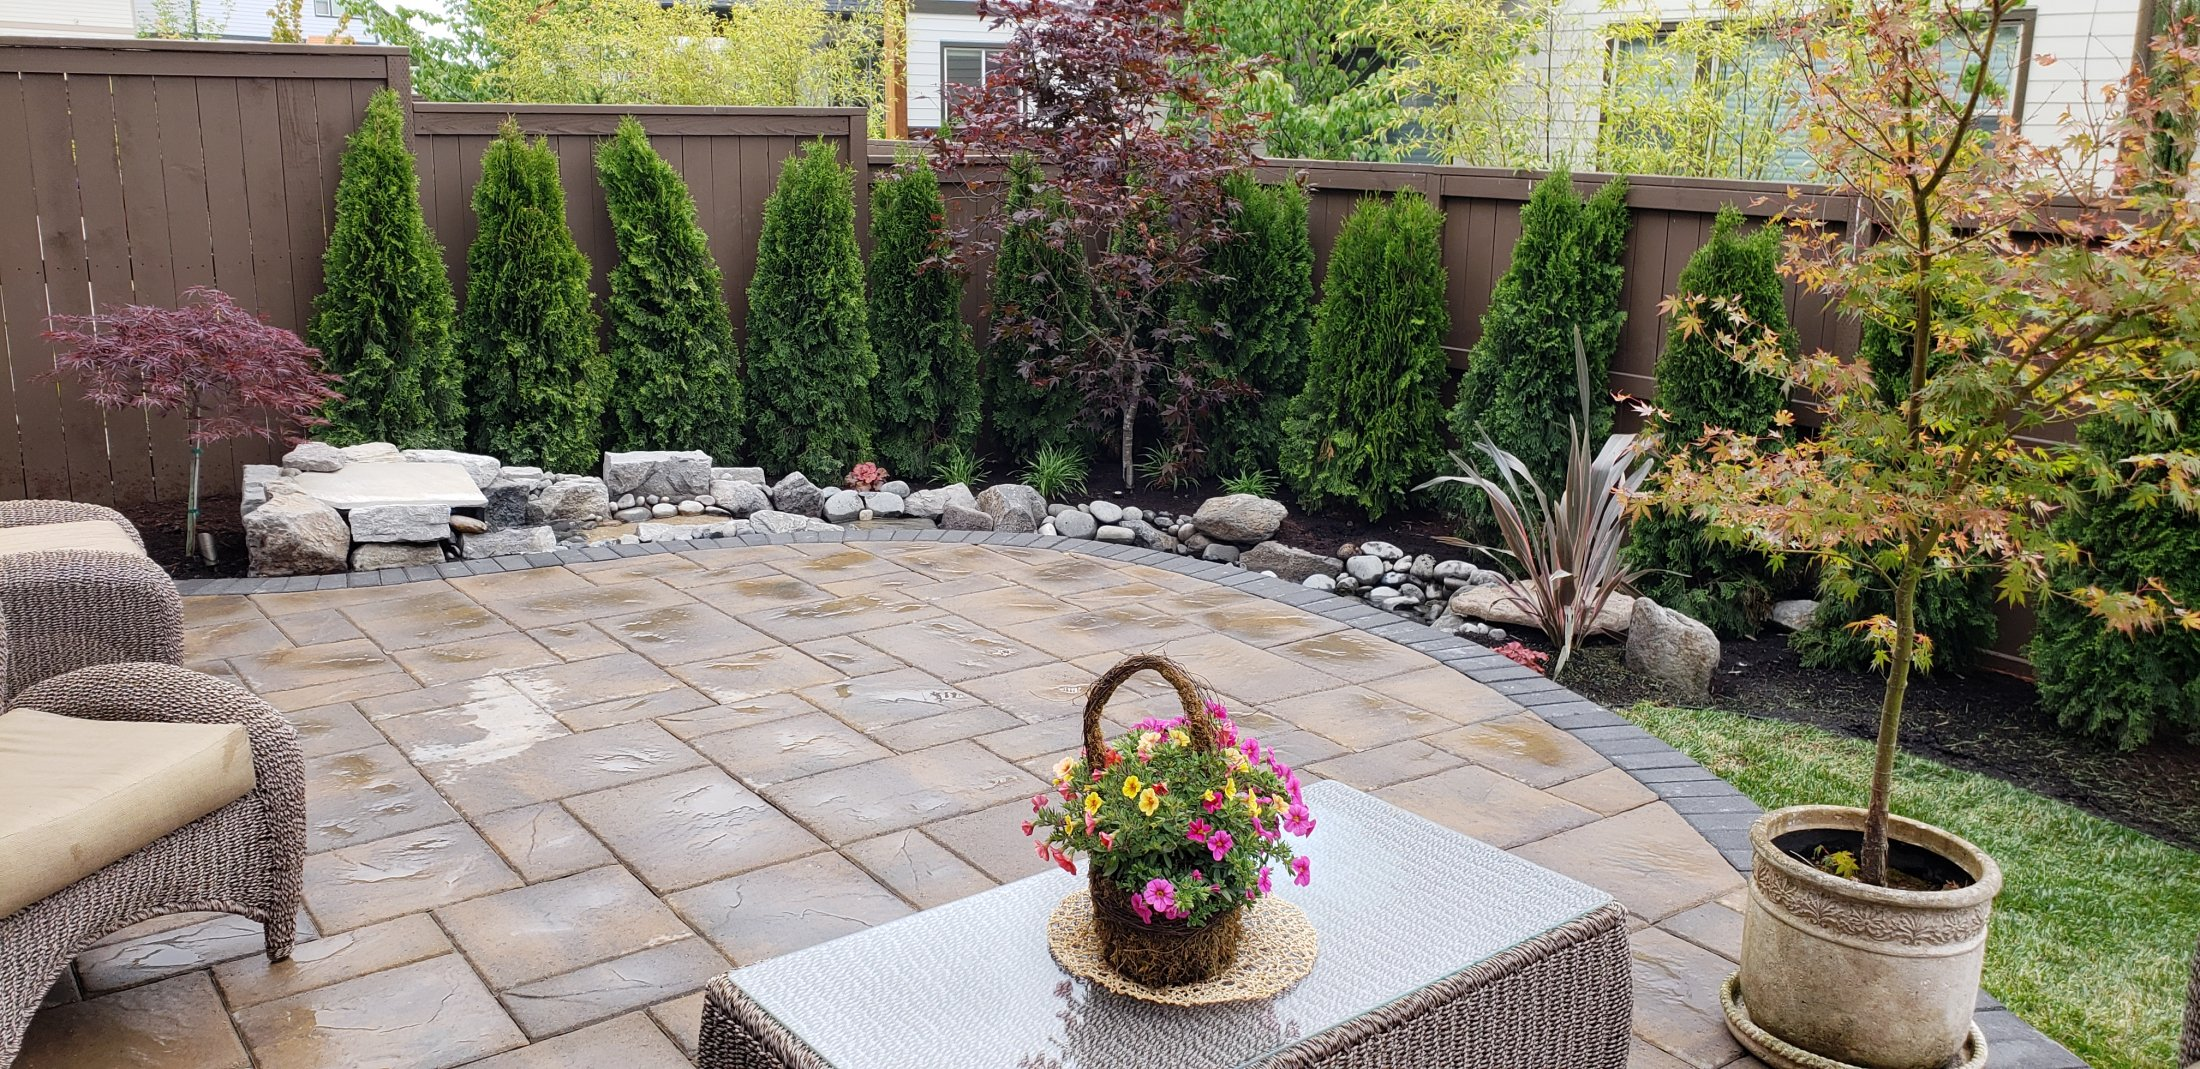 Patio After Waterfall & Plants Installed